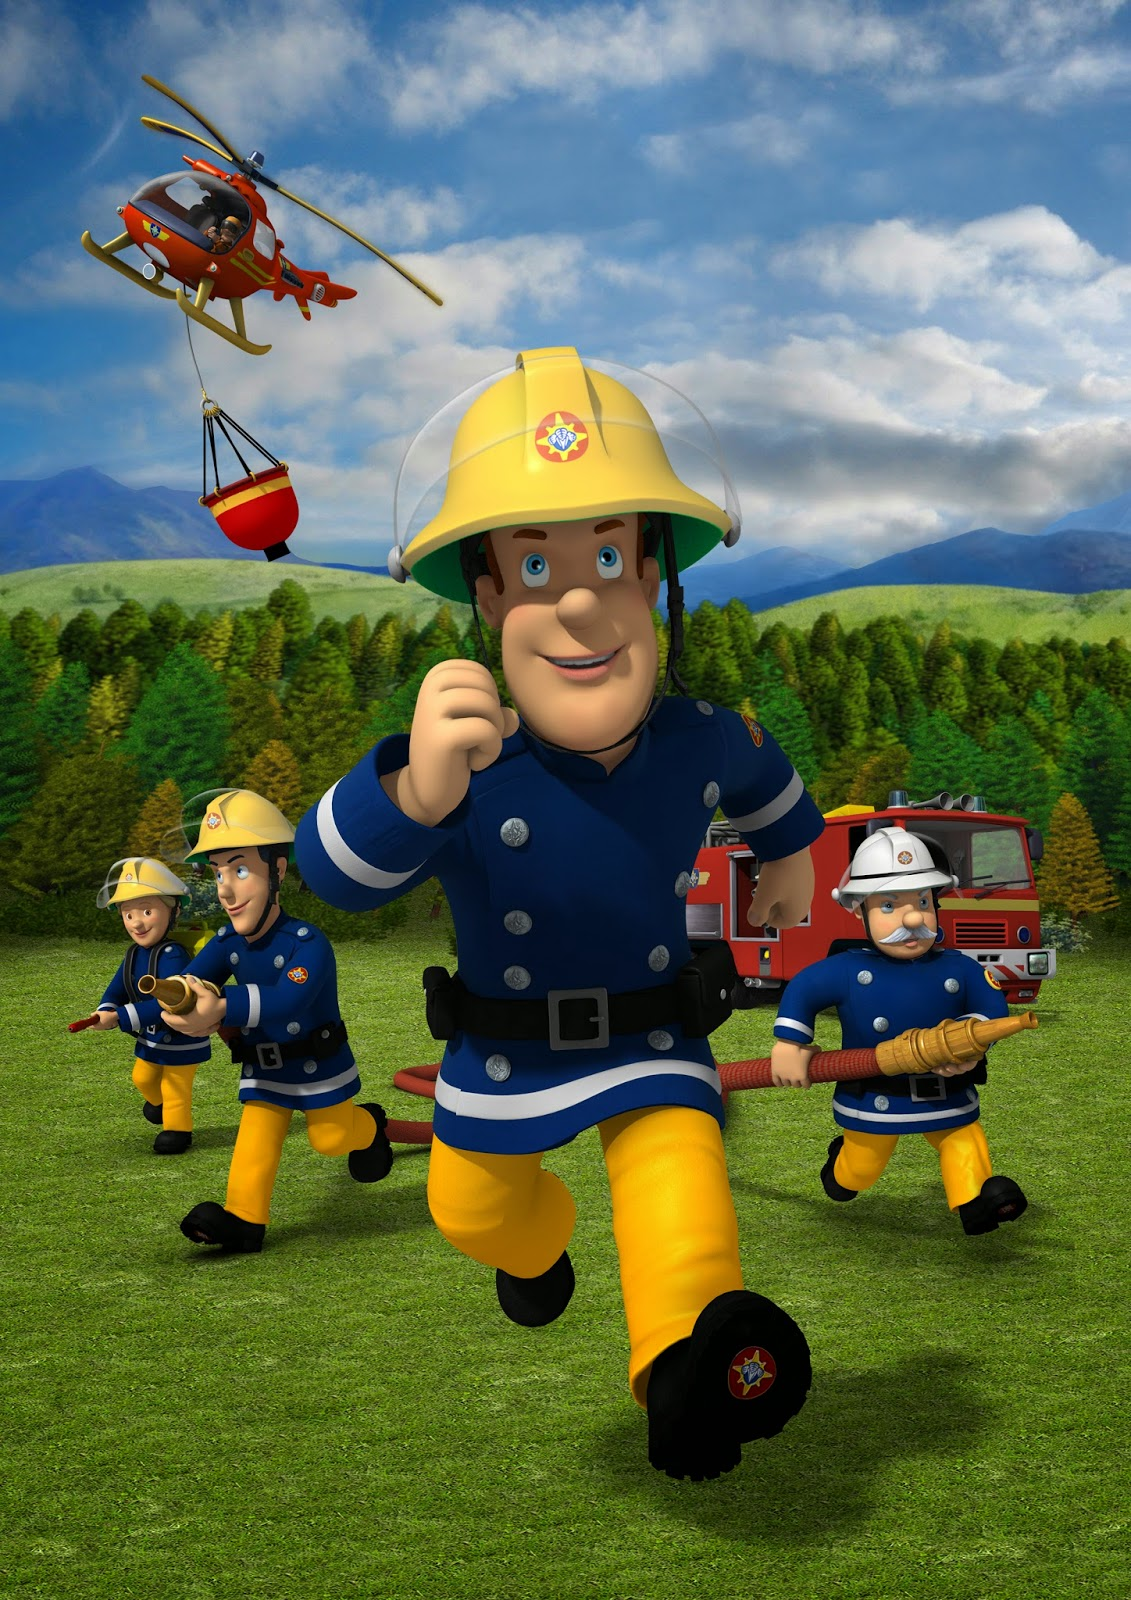 It's just an image of Divine Fireman Sam Pic